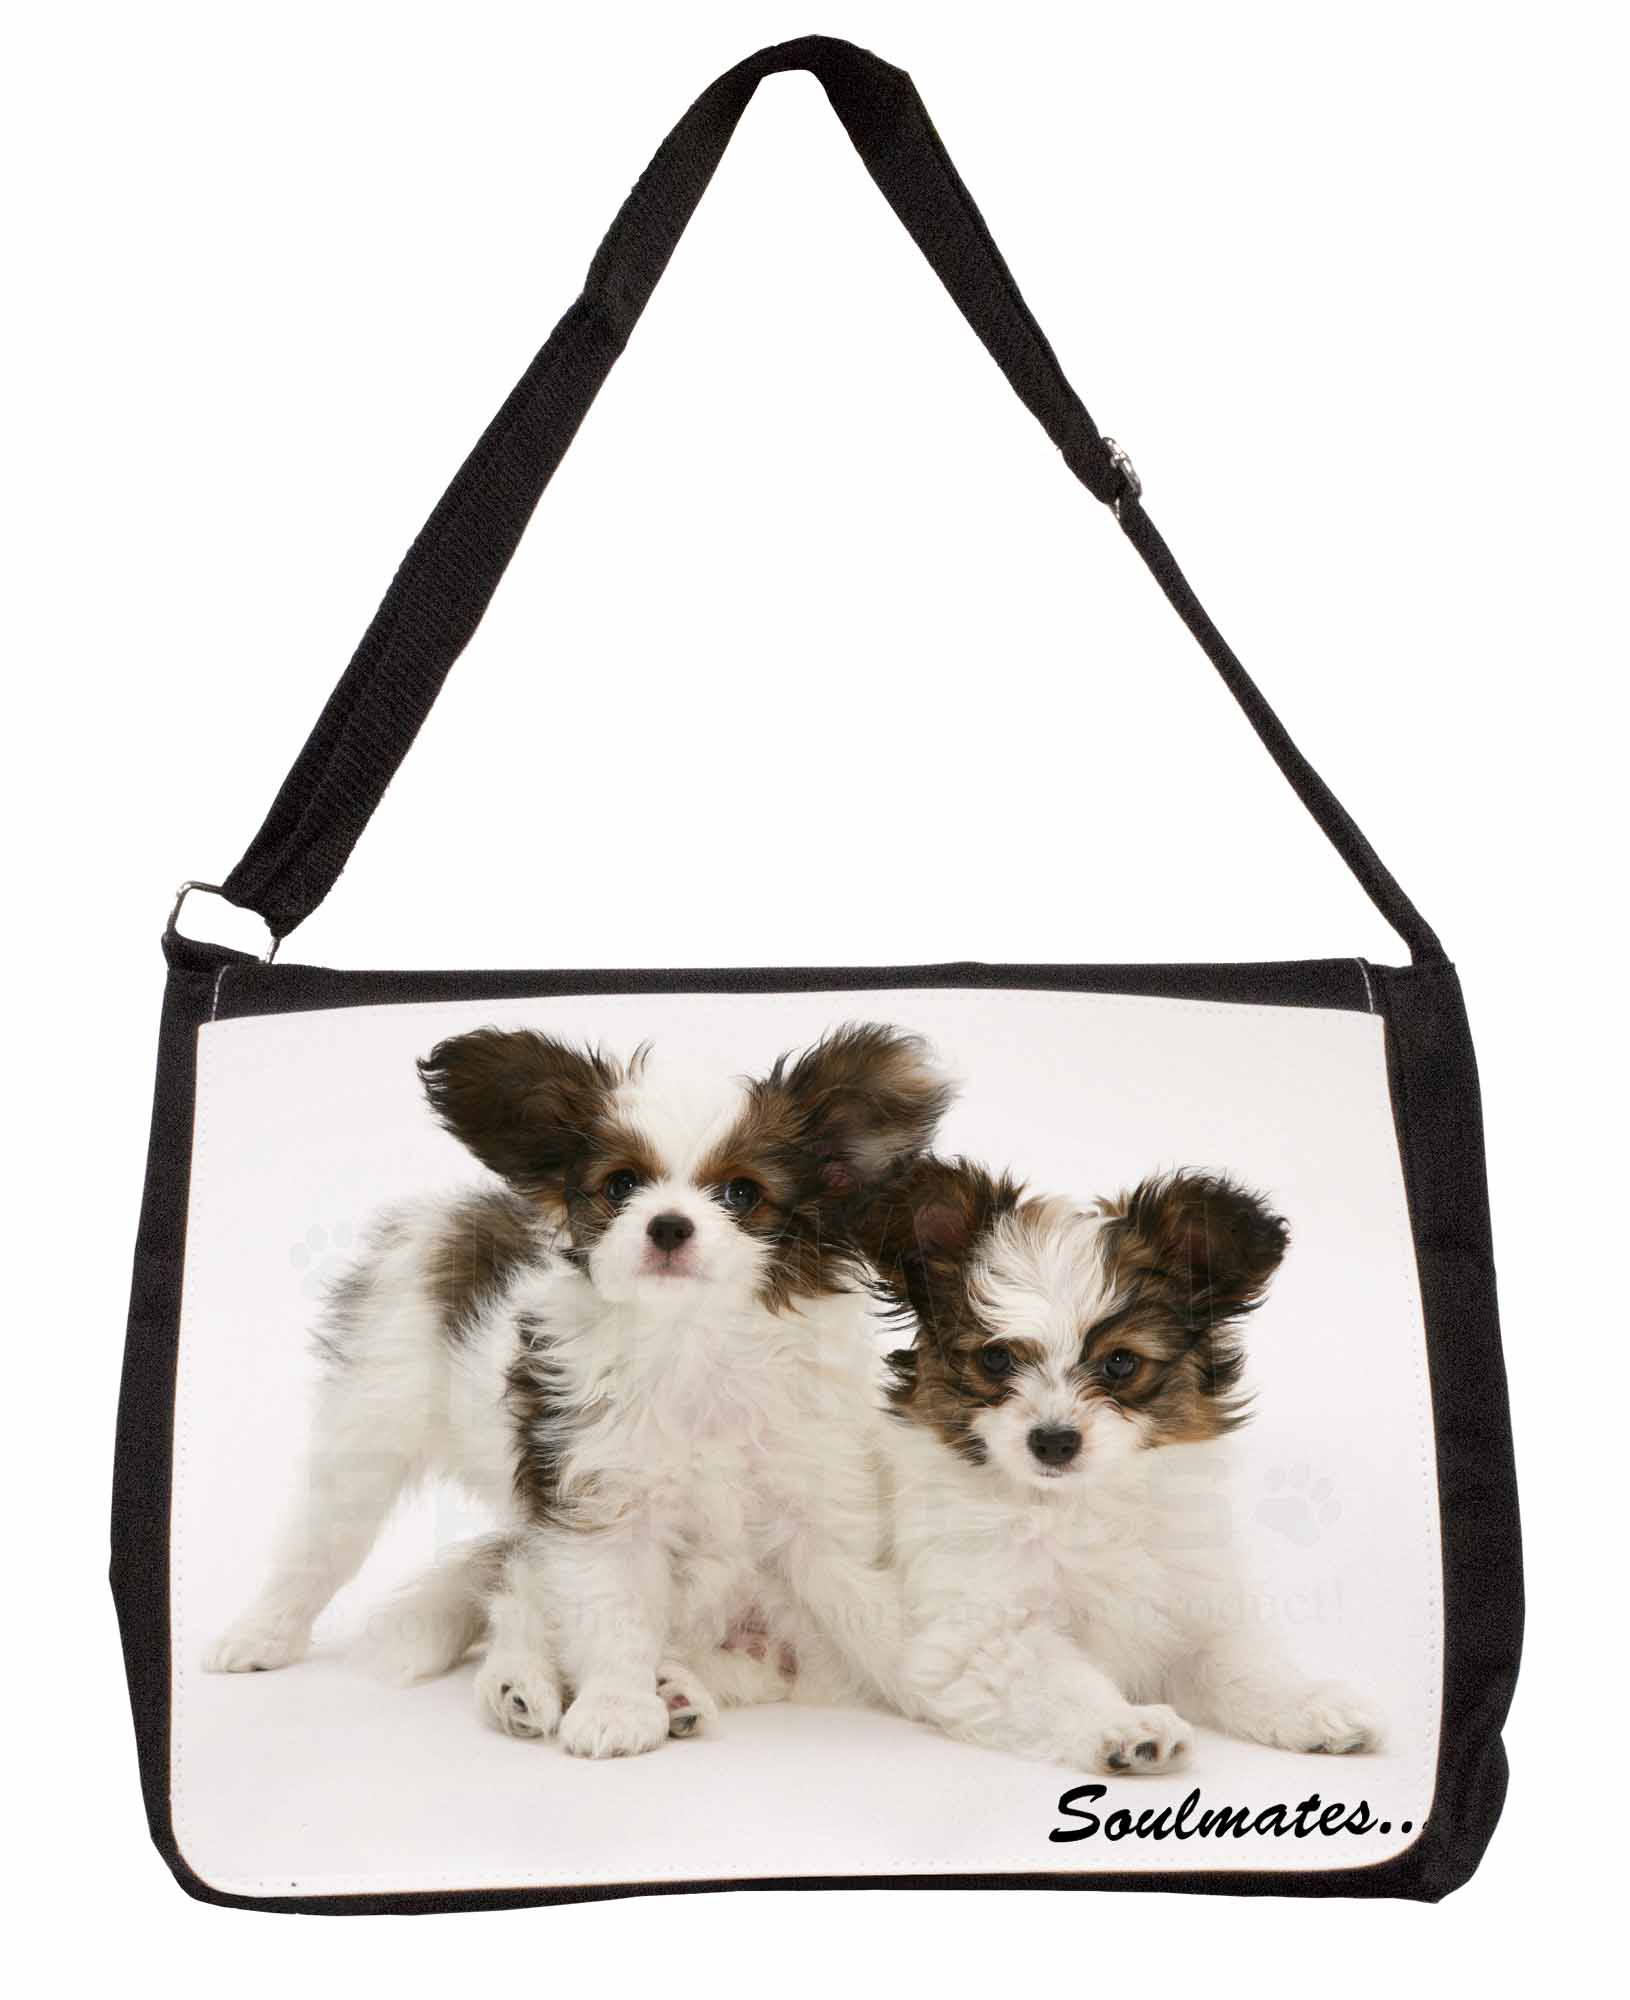 Black Pug Dogs /'Soulmates/' Large Black Laptop Shoulder Bag School//Col SOUL-43SB